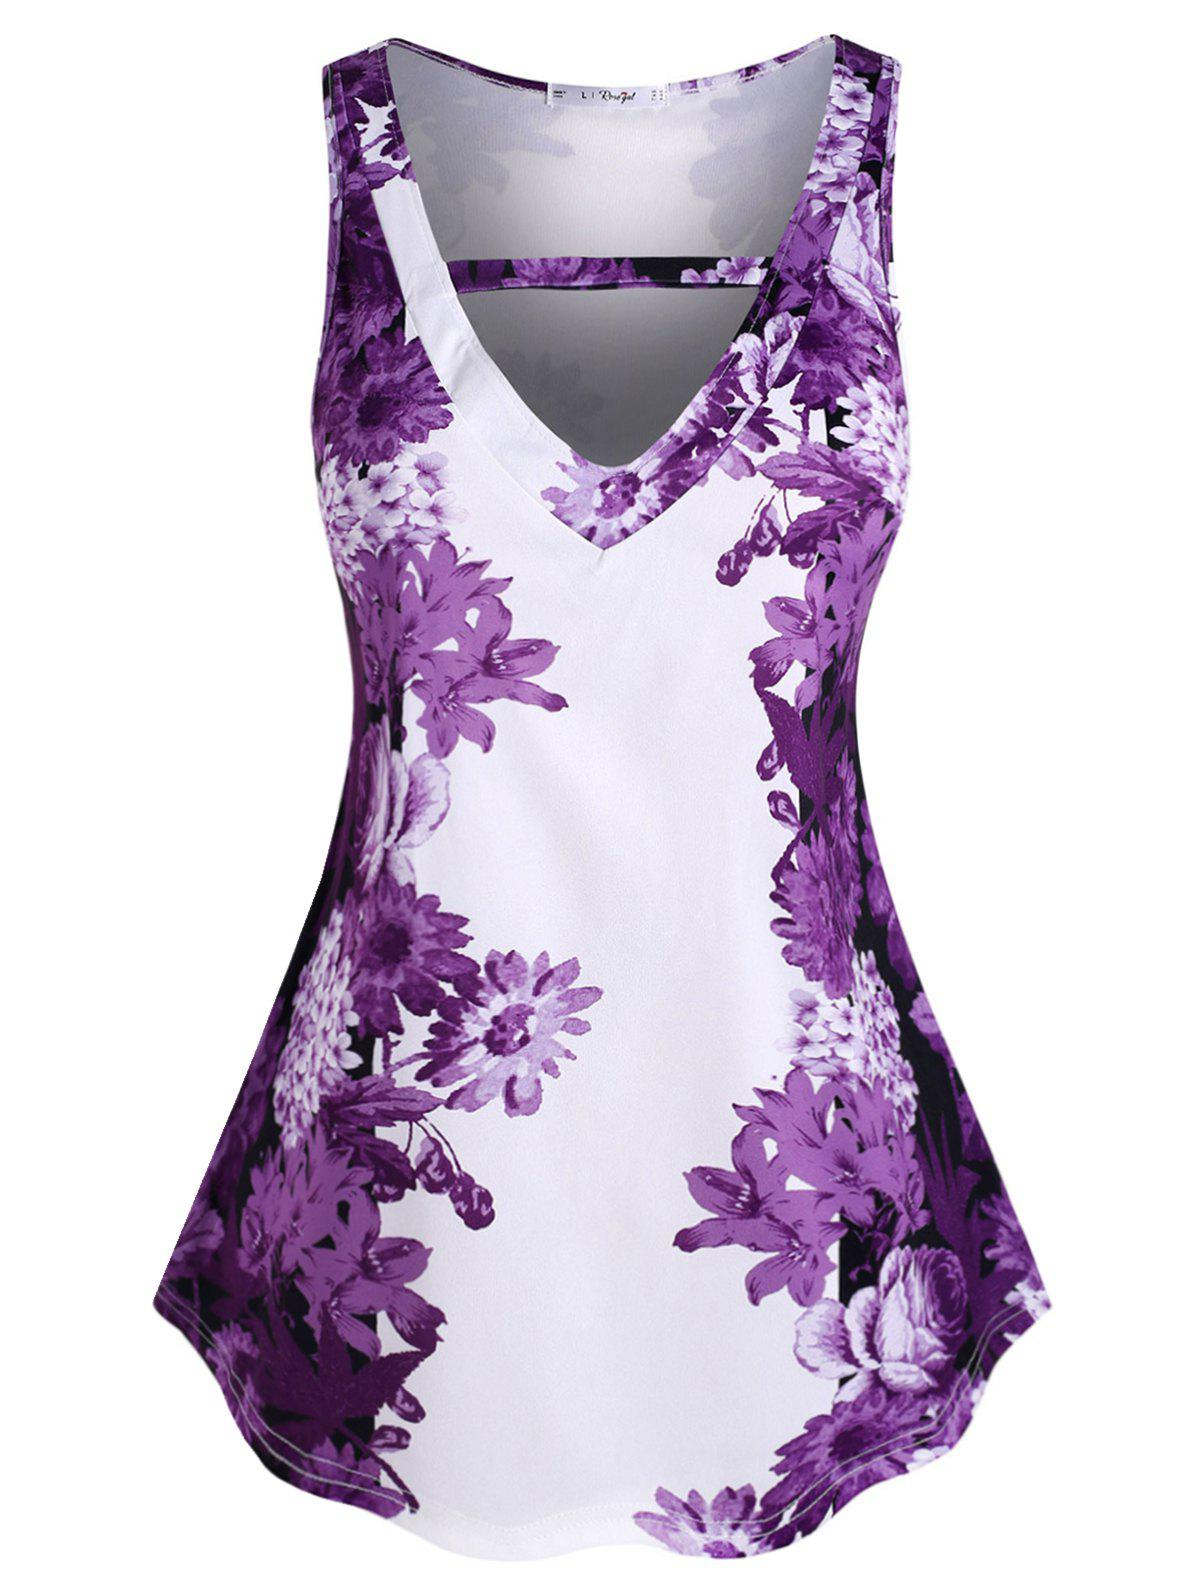 Plus Size Sleeveless Floral Print Tunic Top - DARK ORCHID 4X